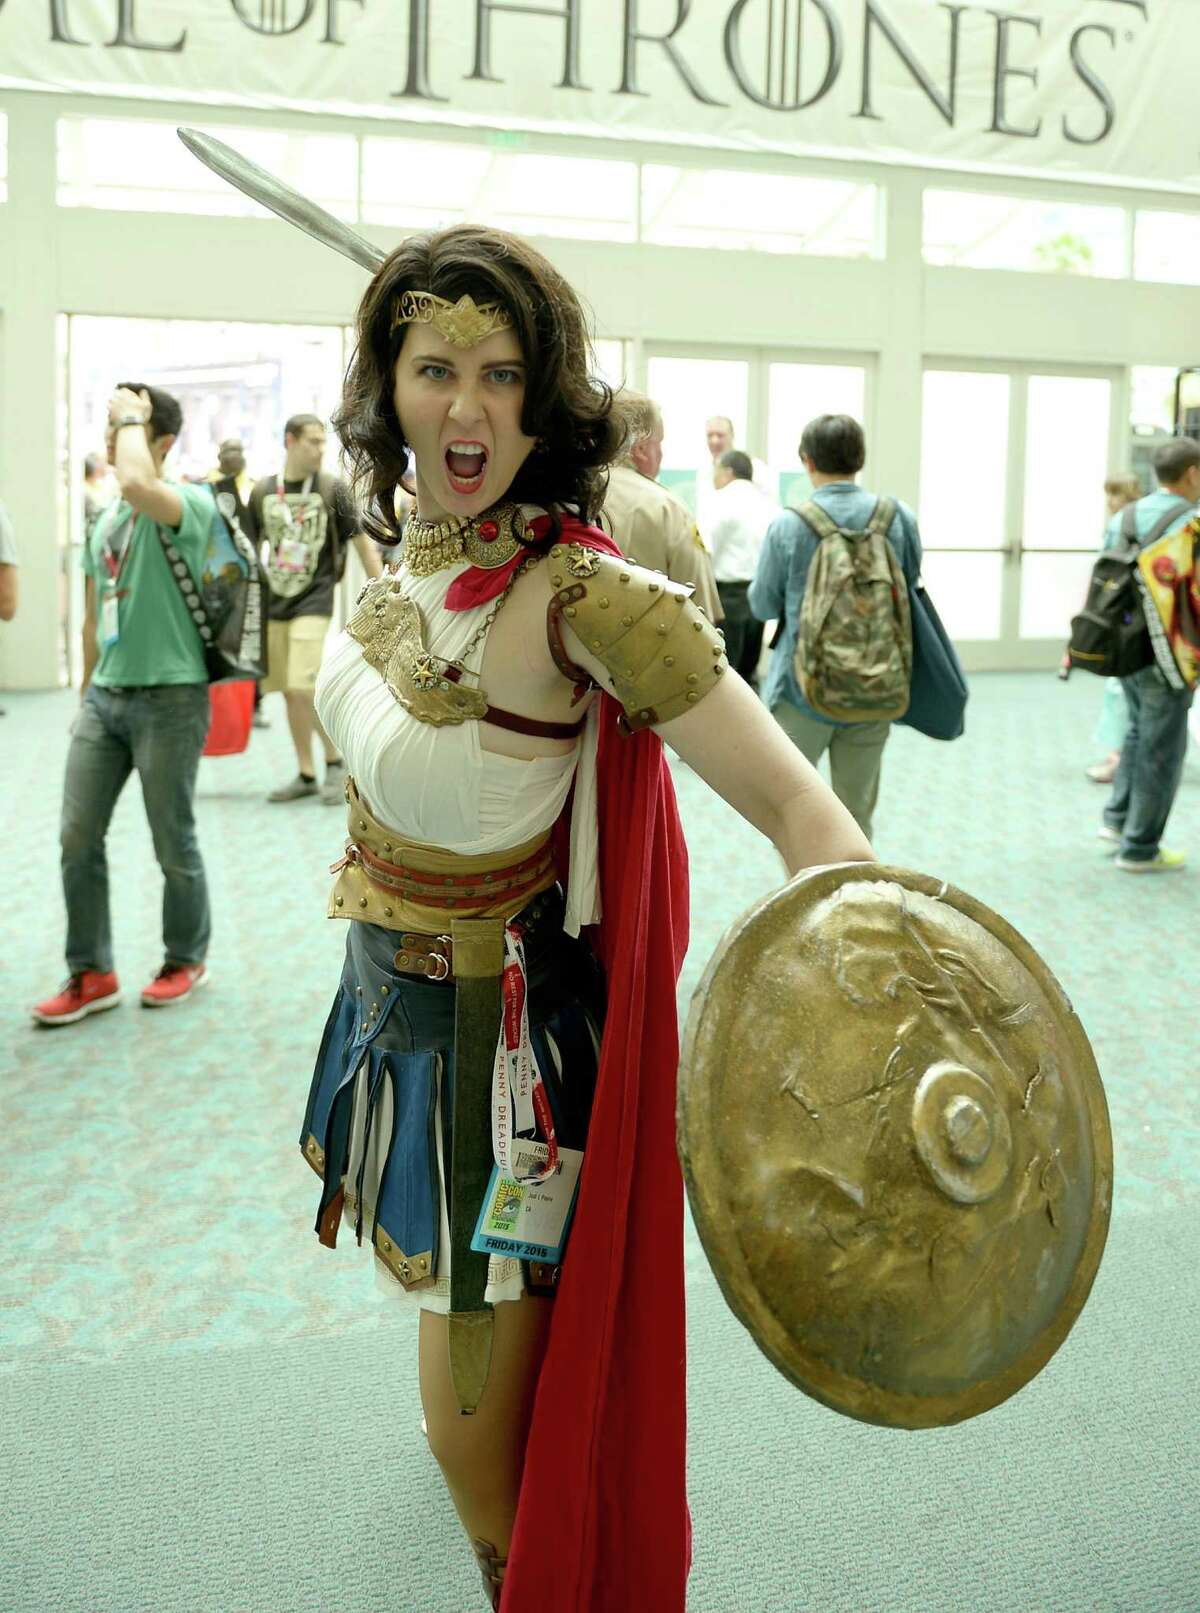 Guests in cosplay attend Comic-Con International 2015 on July 10, 2015 in San Diego, California.